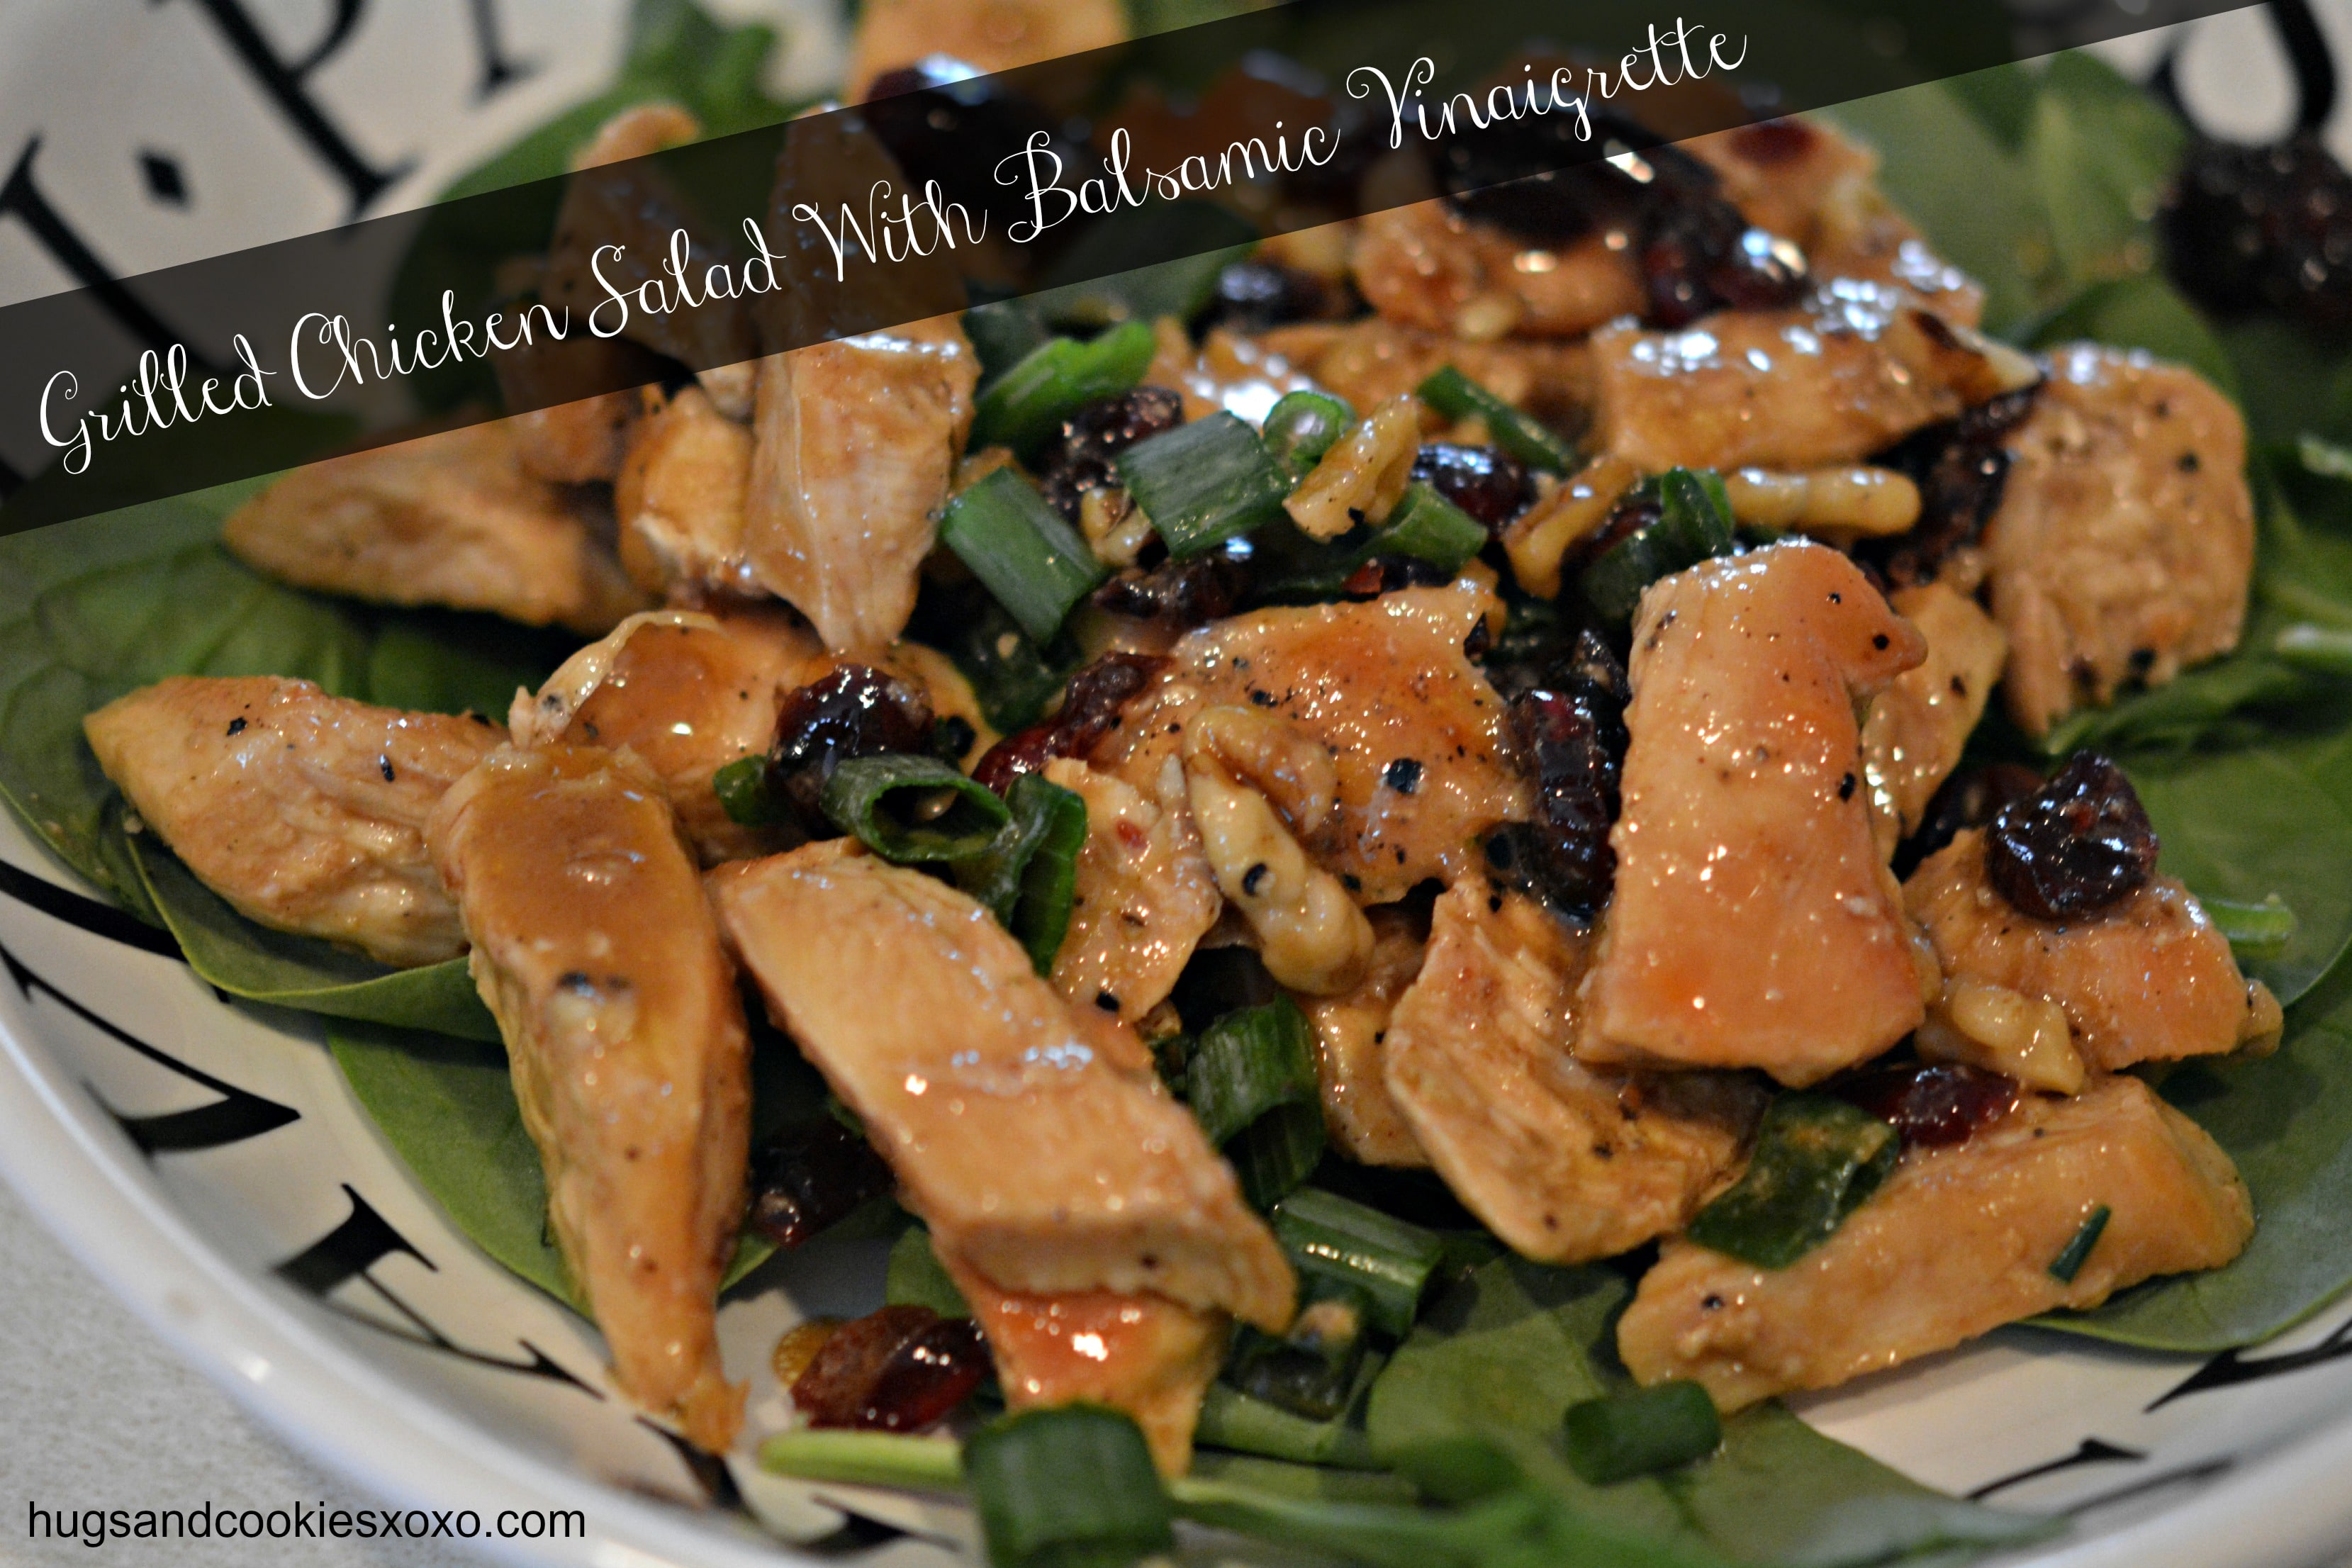 Grilled Chicken Salad & Balsamic Vinaigrette - Hugs and Cookies XOXO